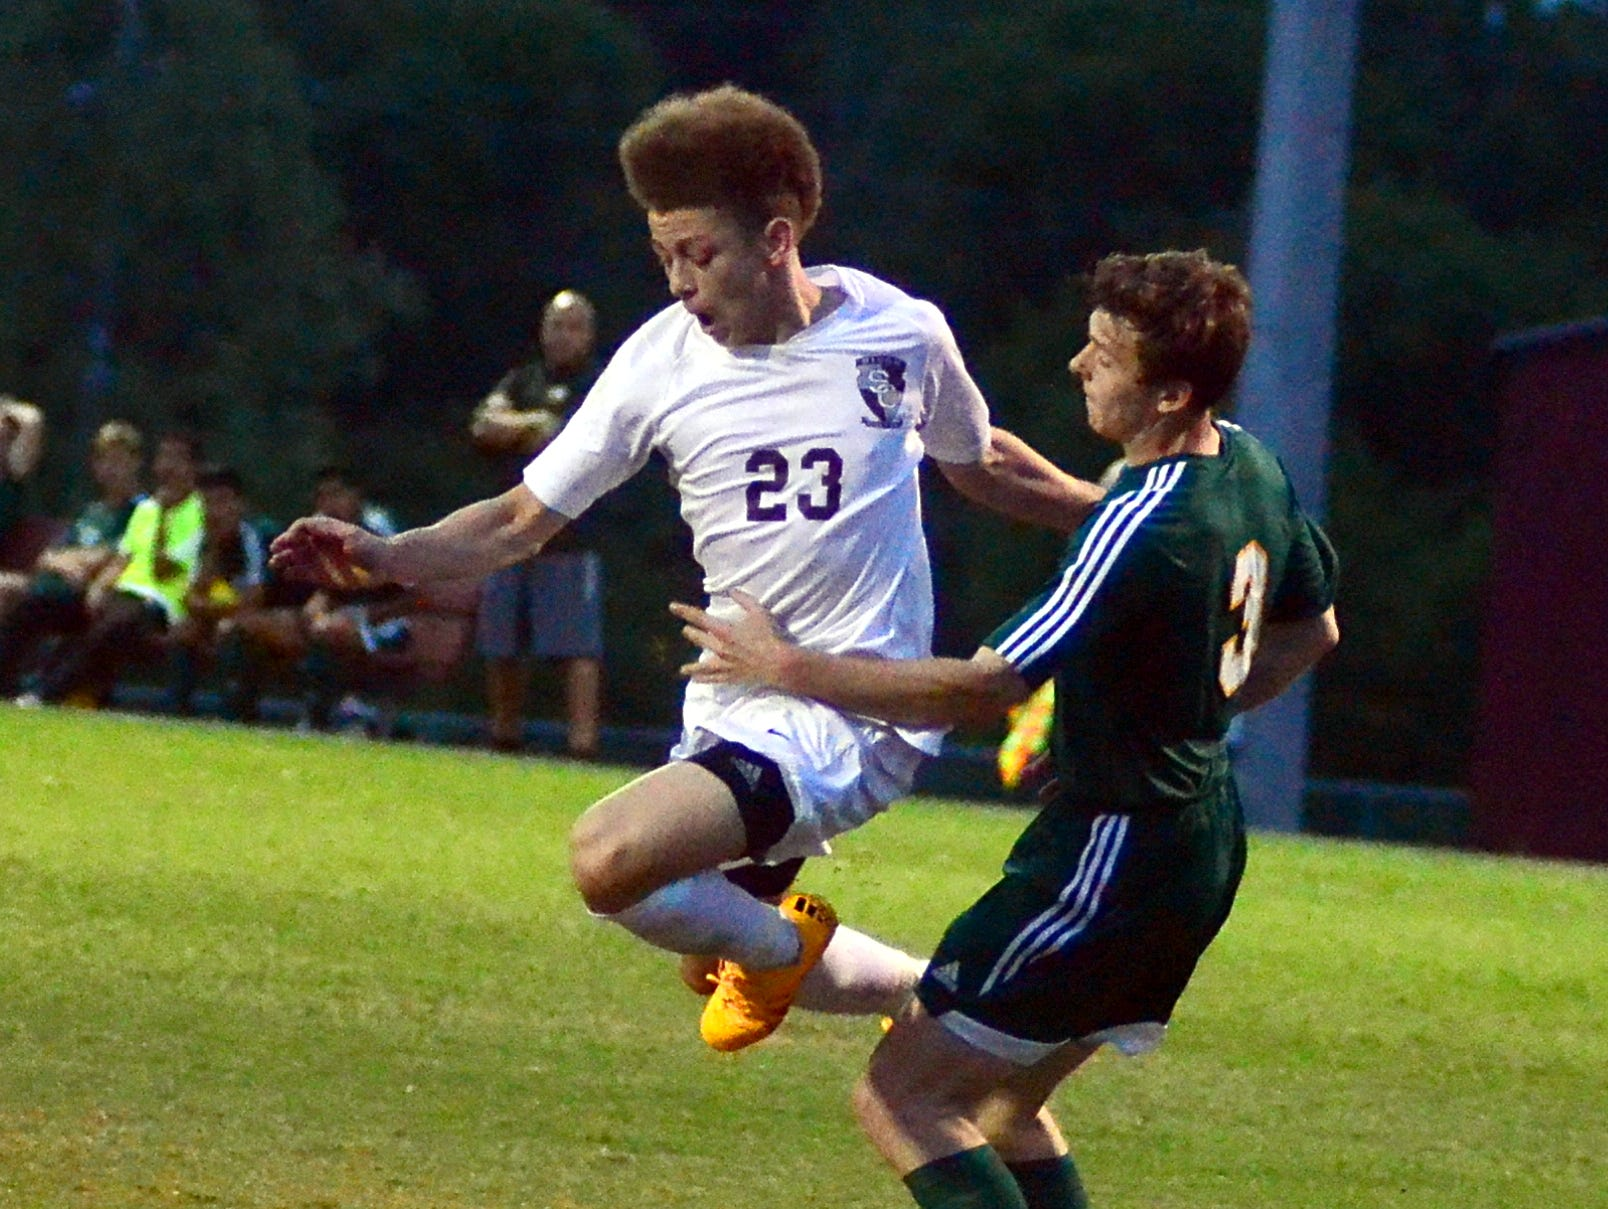 Station Camp High junior Chase Freeman maneuvers past Gallatin senior Tyler Lee during first-half action. Freeman scored twice in the Bison's 2-0 victory over Gallatin on Friday evening.